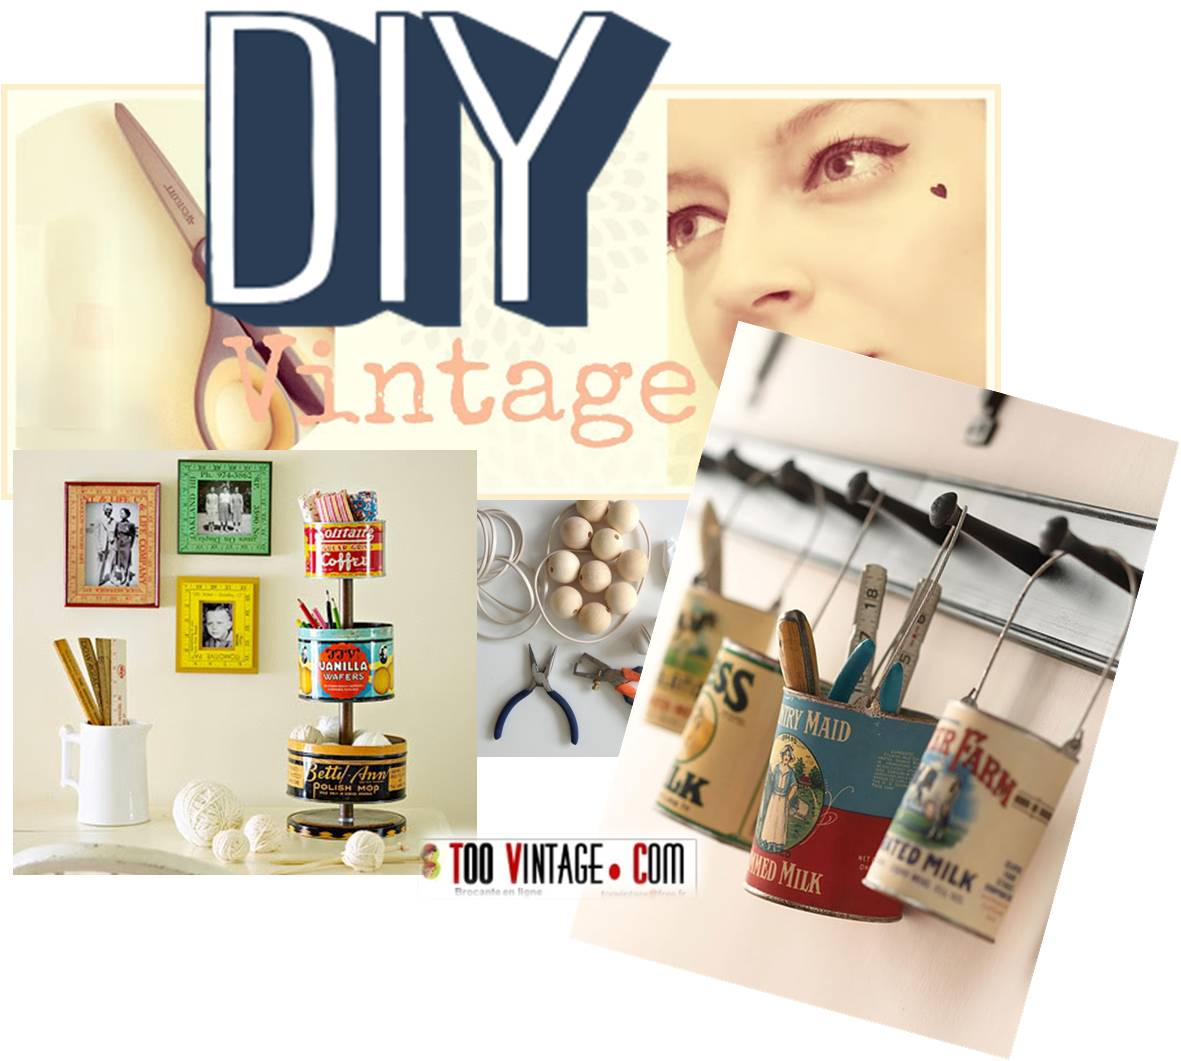 Diy boutique 1